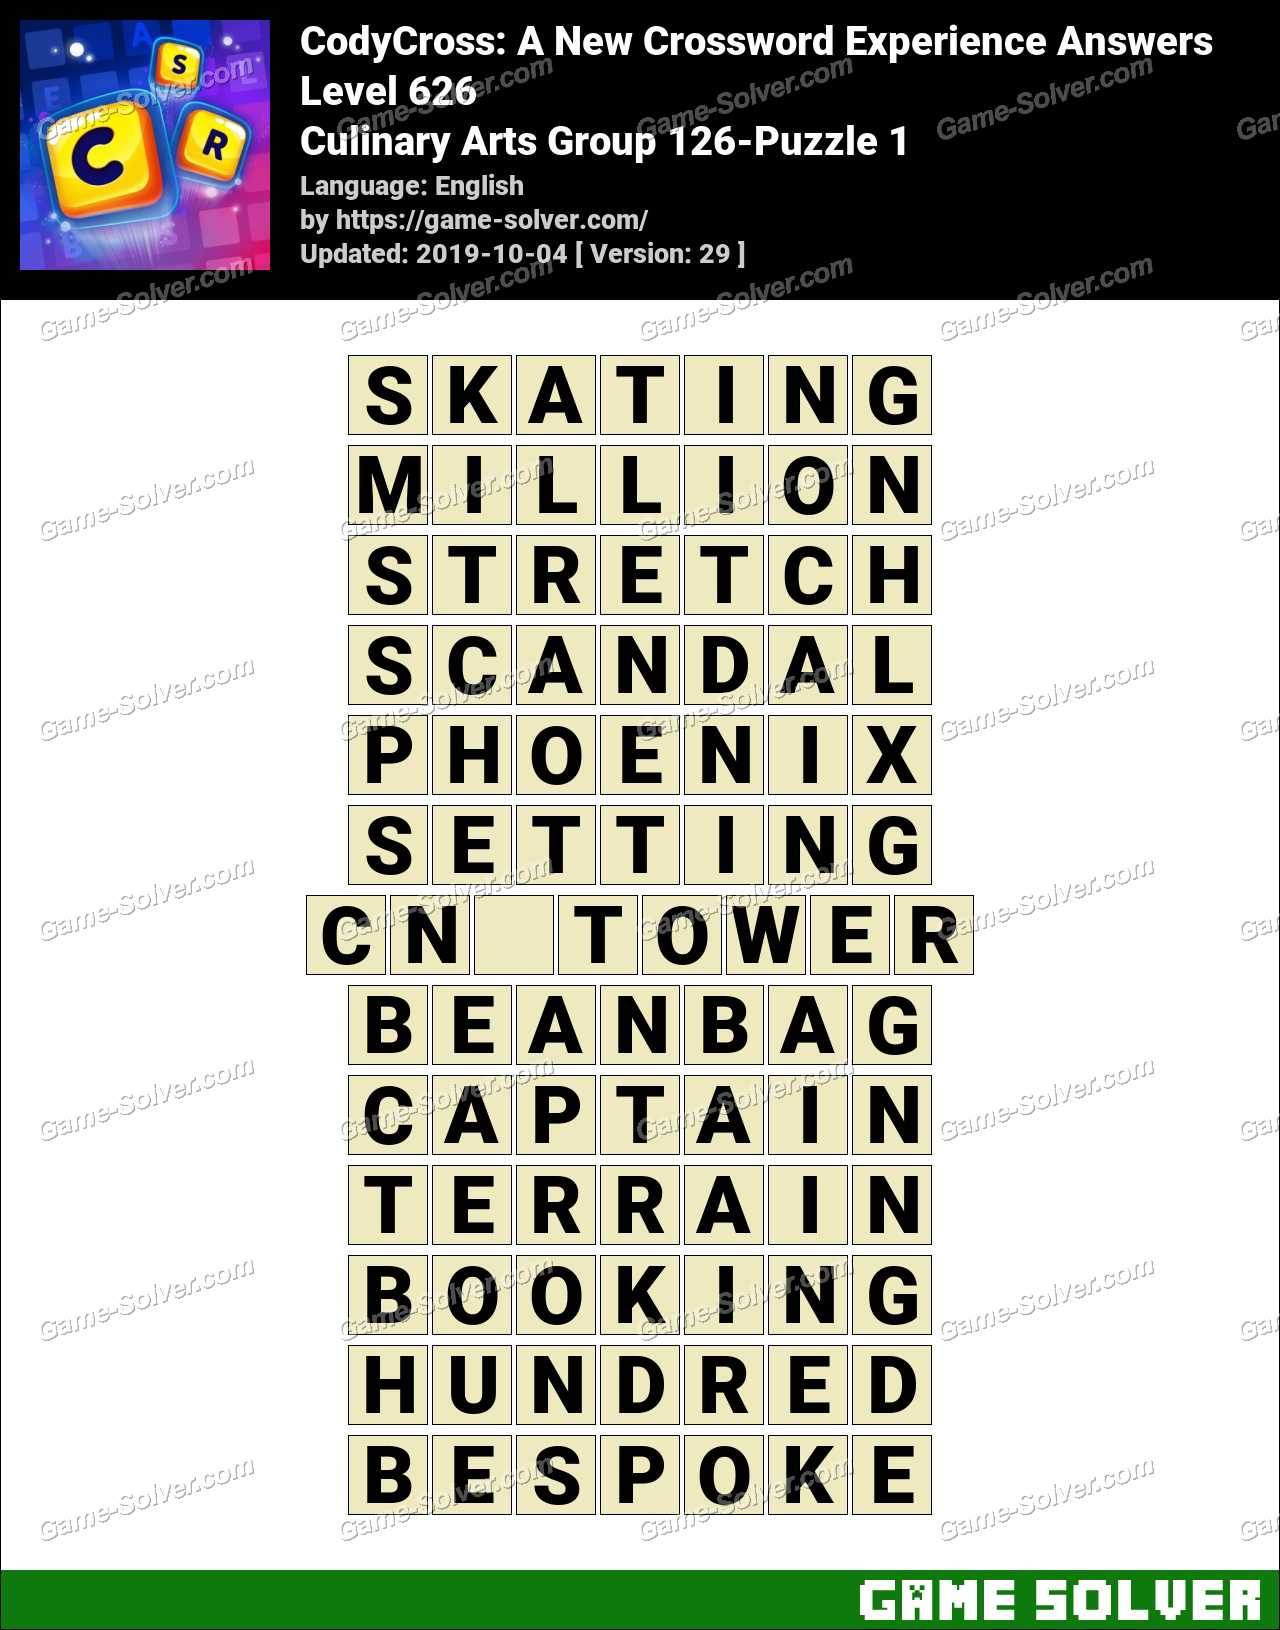 CodyCross Culinary Arts Group 126-Puzzle 1 Answers